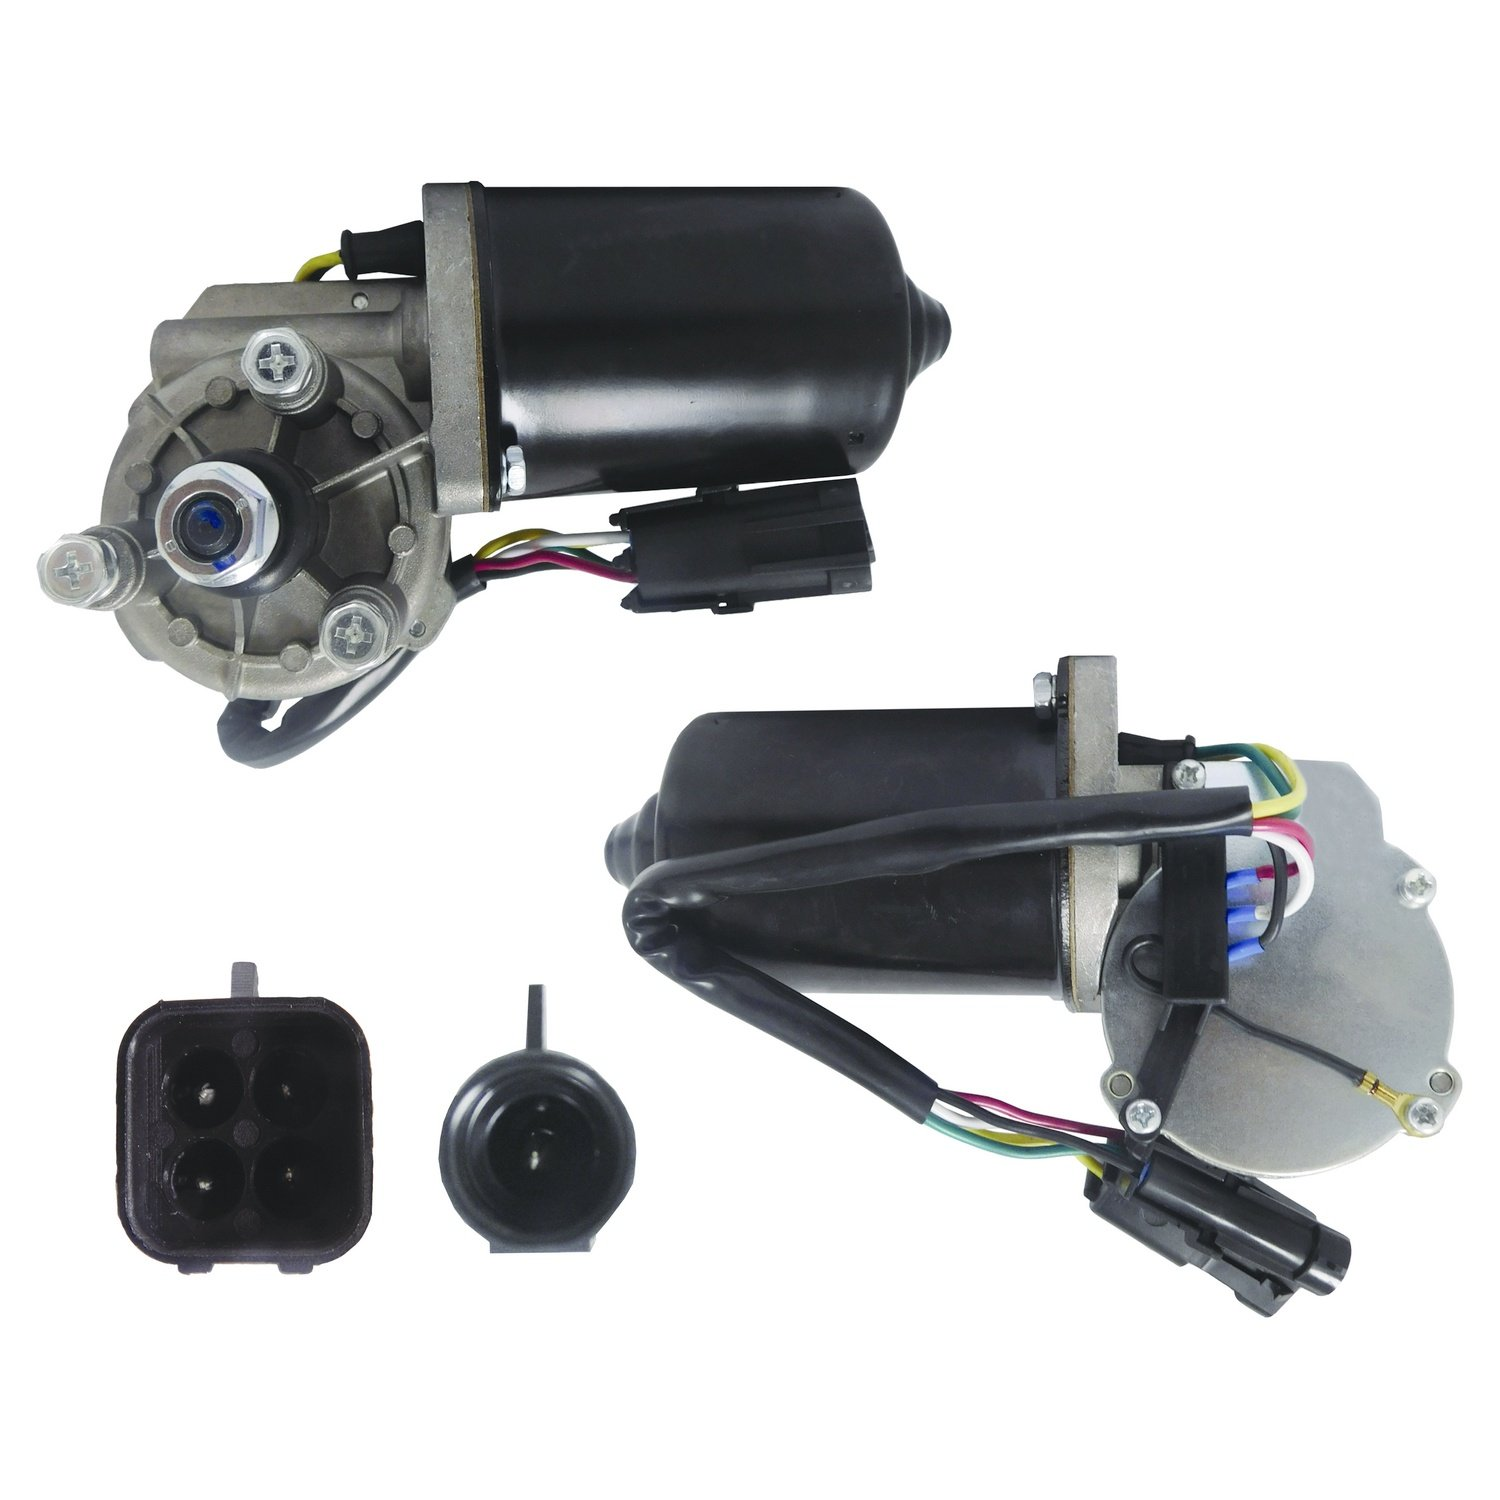 New Wiper Motor For Kenworth (1987-2006), Mack (1994-2010), Western Star (2005-2015), Replaces E-108-010 E108010 by EMS Global Direct